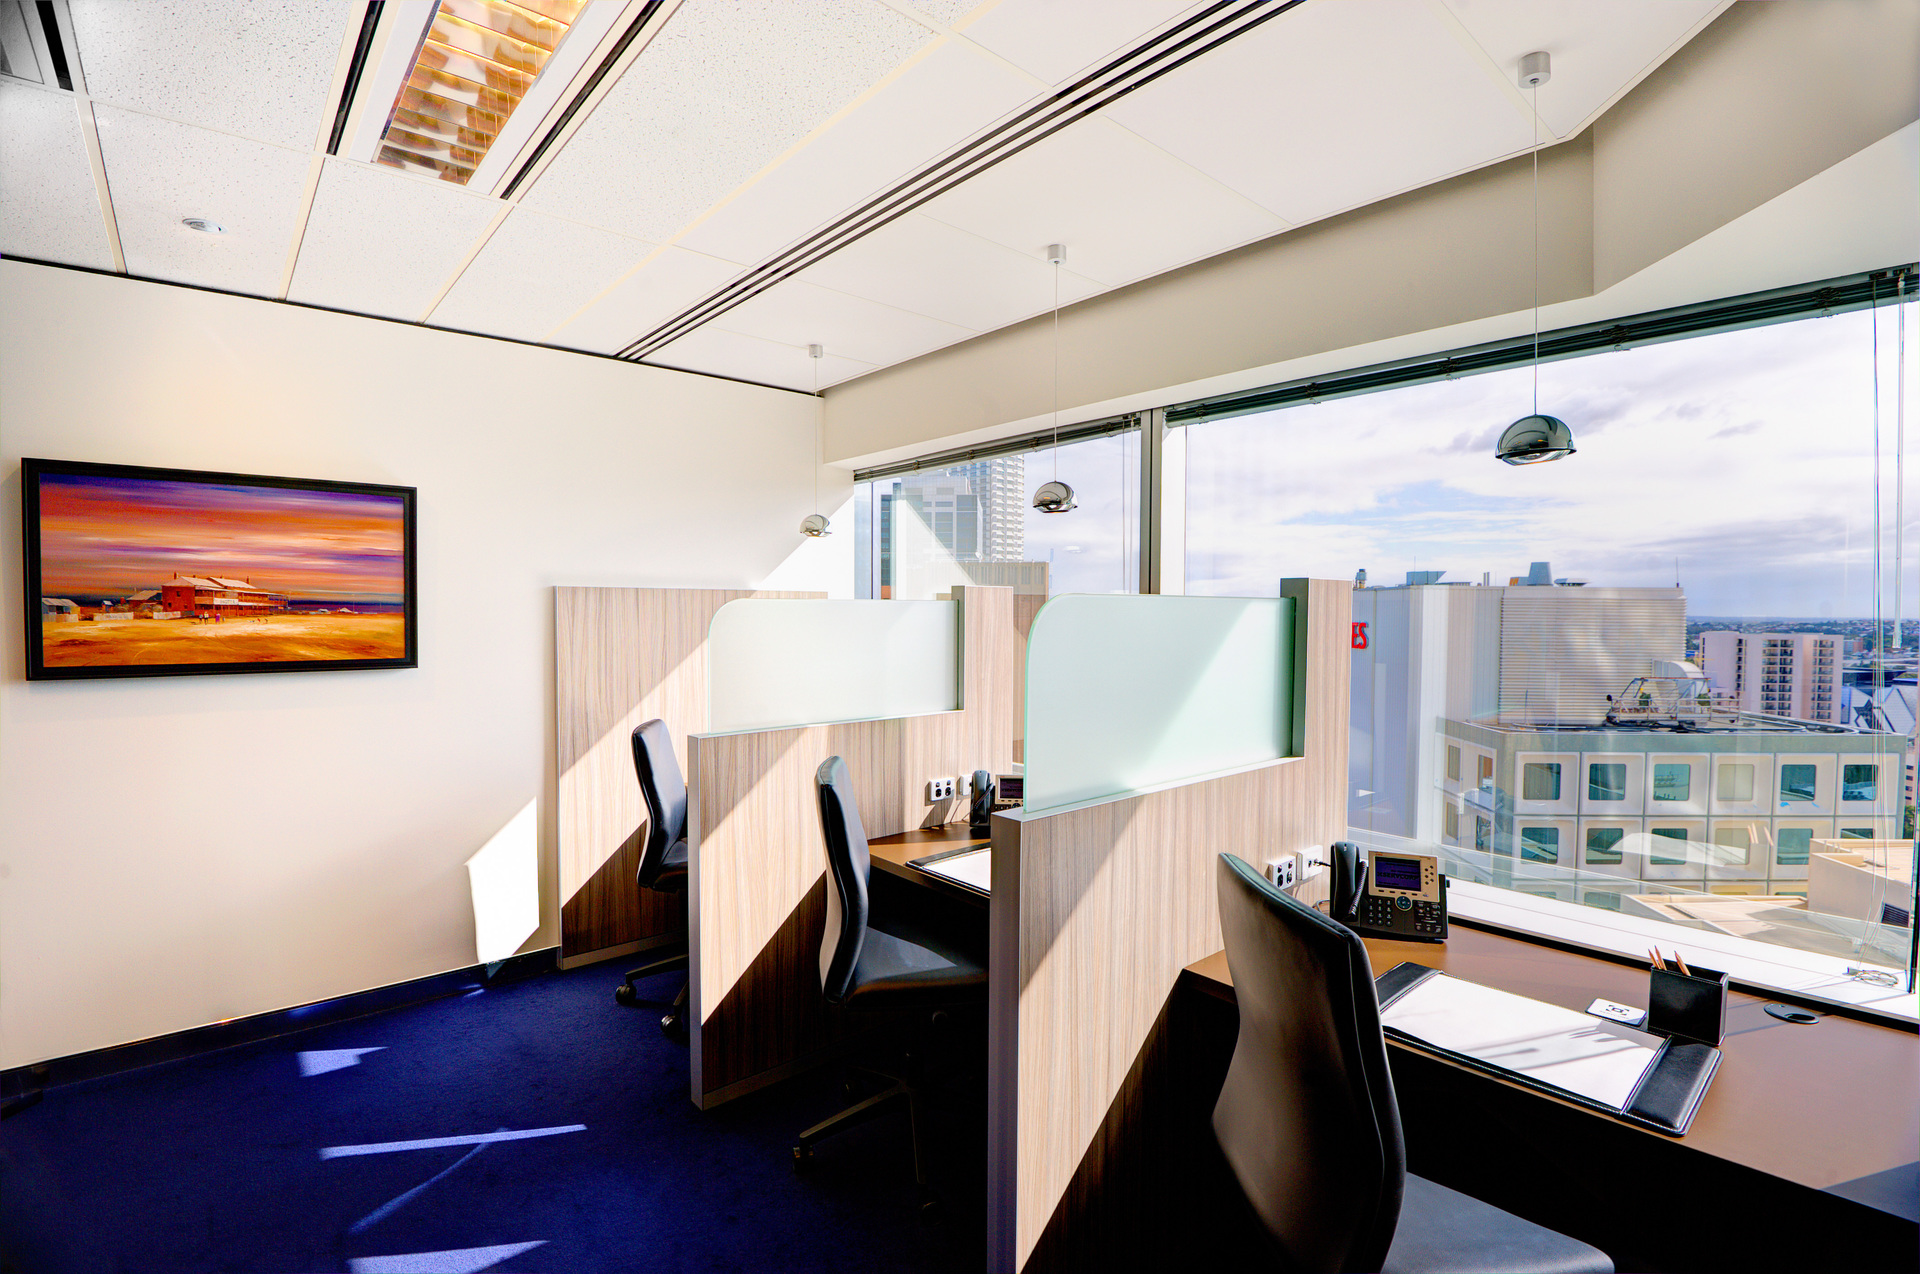 OFFICES SPACE LOCATED ACROSS THE PERTH SWAN RIVER WITH AMAZING VIEWS